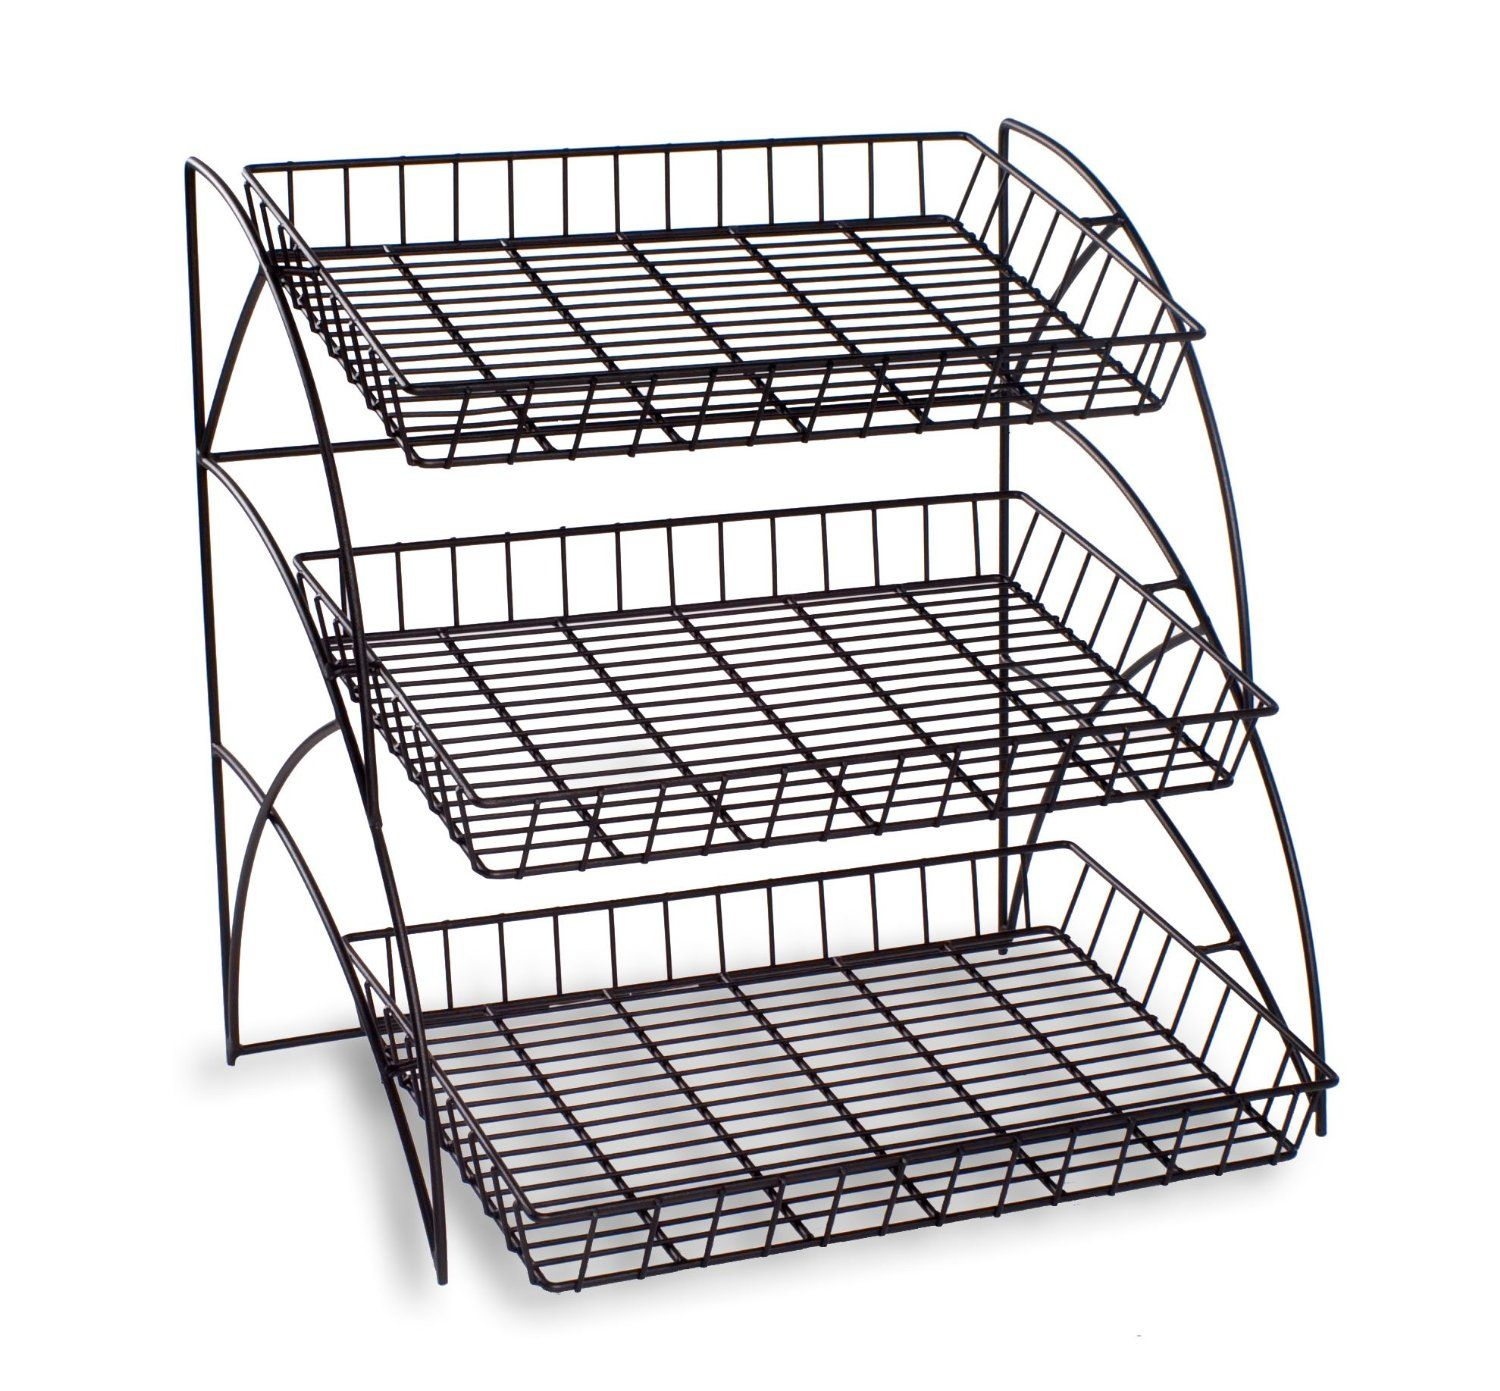 3 Tiered Wire Display Rack Designed For Displaying A Variety Of